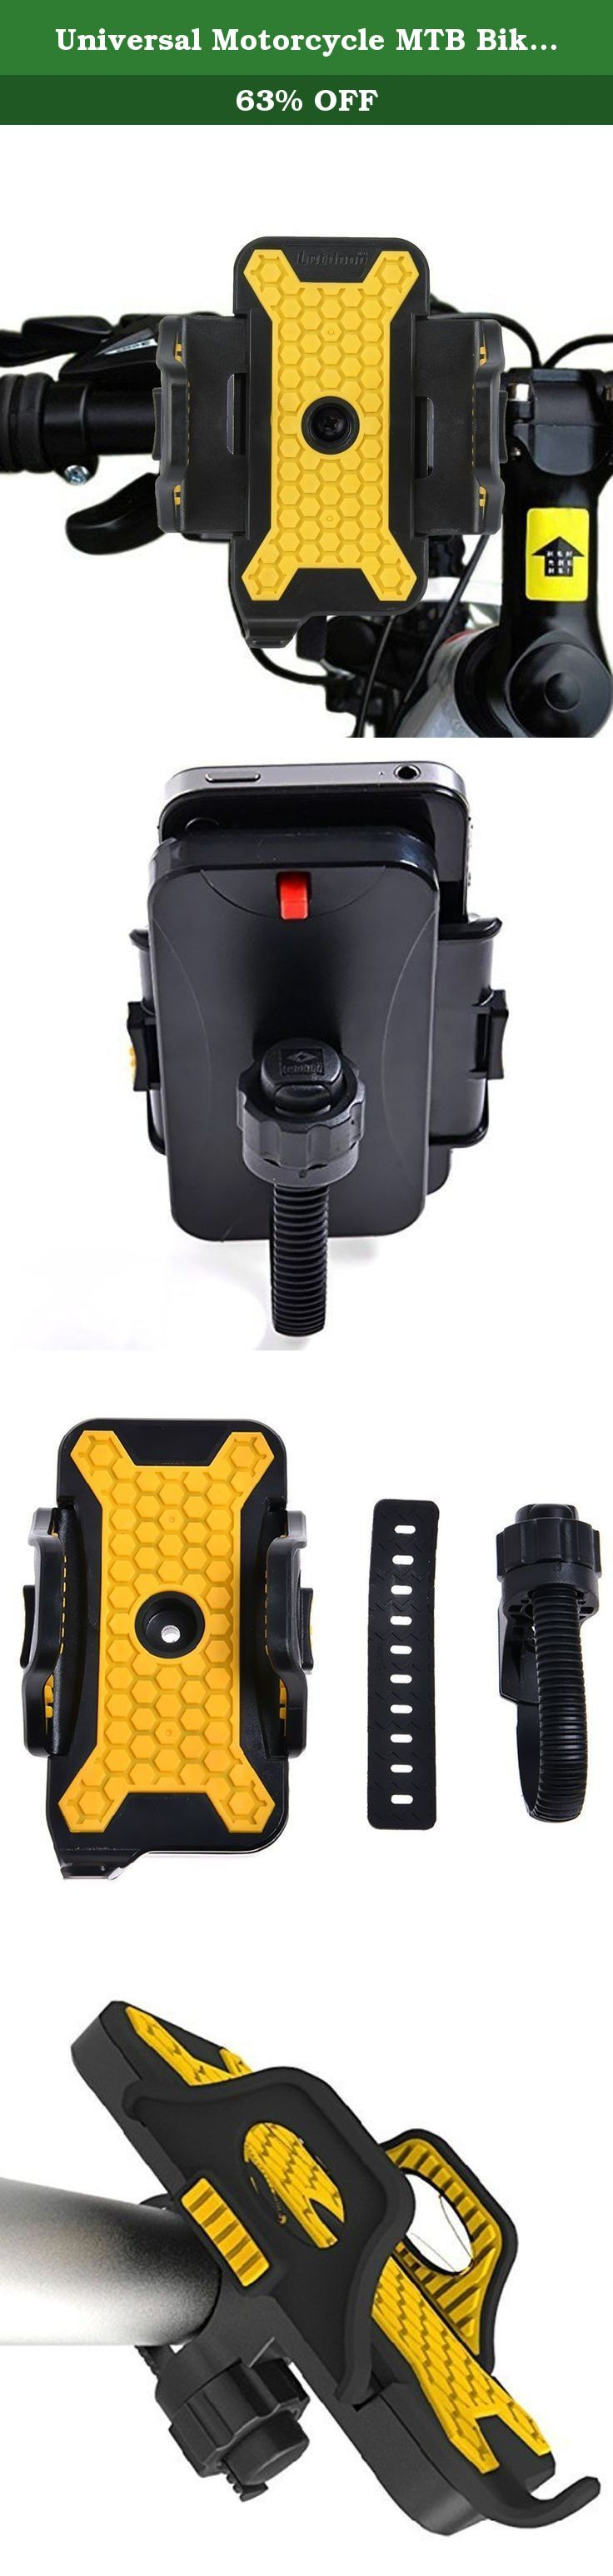 Universal Motorcycle MTB Bike Bicycle Handlebar Mount Holder for iPhone SE Iphone6 6S 5 5S 5C 4 4s Samsung S7 S6 S5 S4 Note 3 2 1 HTC LG GPS Etc. Features: 100% brand new and high quality Universal Motorcycle MTB Bike Bicycle Handlebar Mount Holder for Iphone6 5S 5C Samsung Galaxy S6 S5 S4 Galaxy Note3 2 Htc One LG Blackberry Easy to lock and unlock Easy to assemble and convenient to use Made of ABS and TPU, anti-slid and protects your cell phone from scratches Can be installed on bicycle...